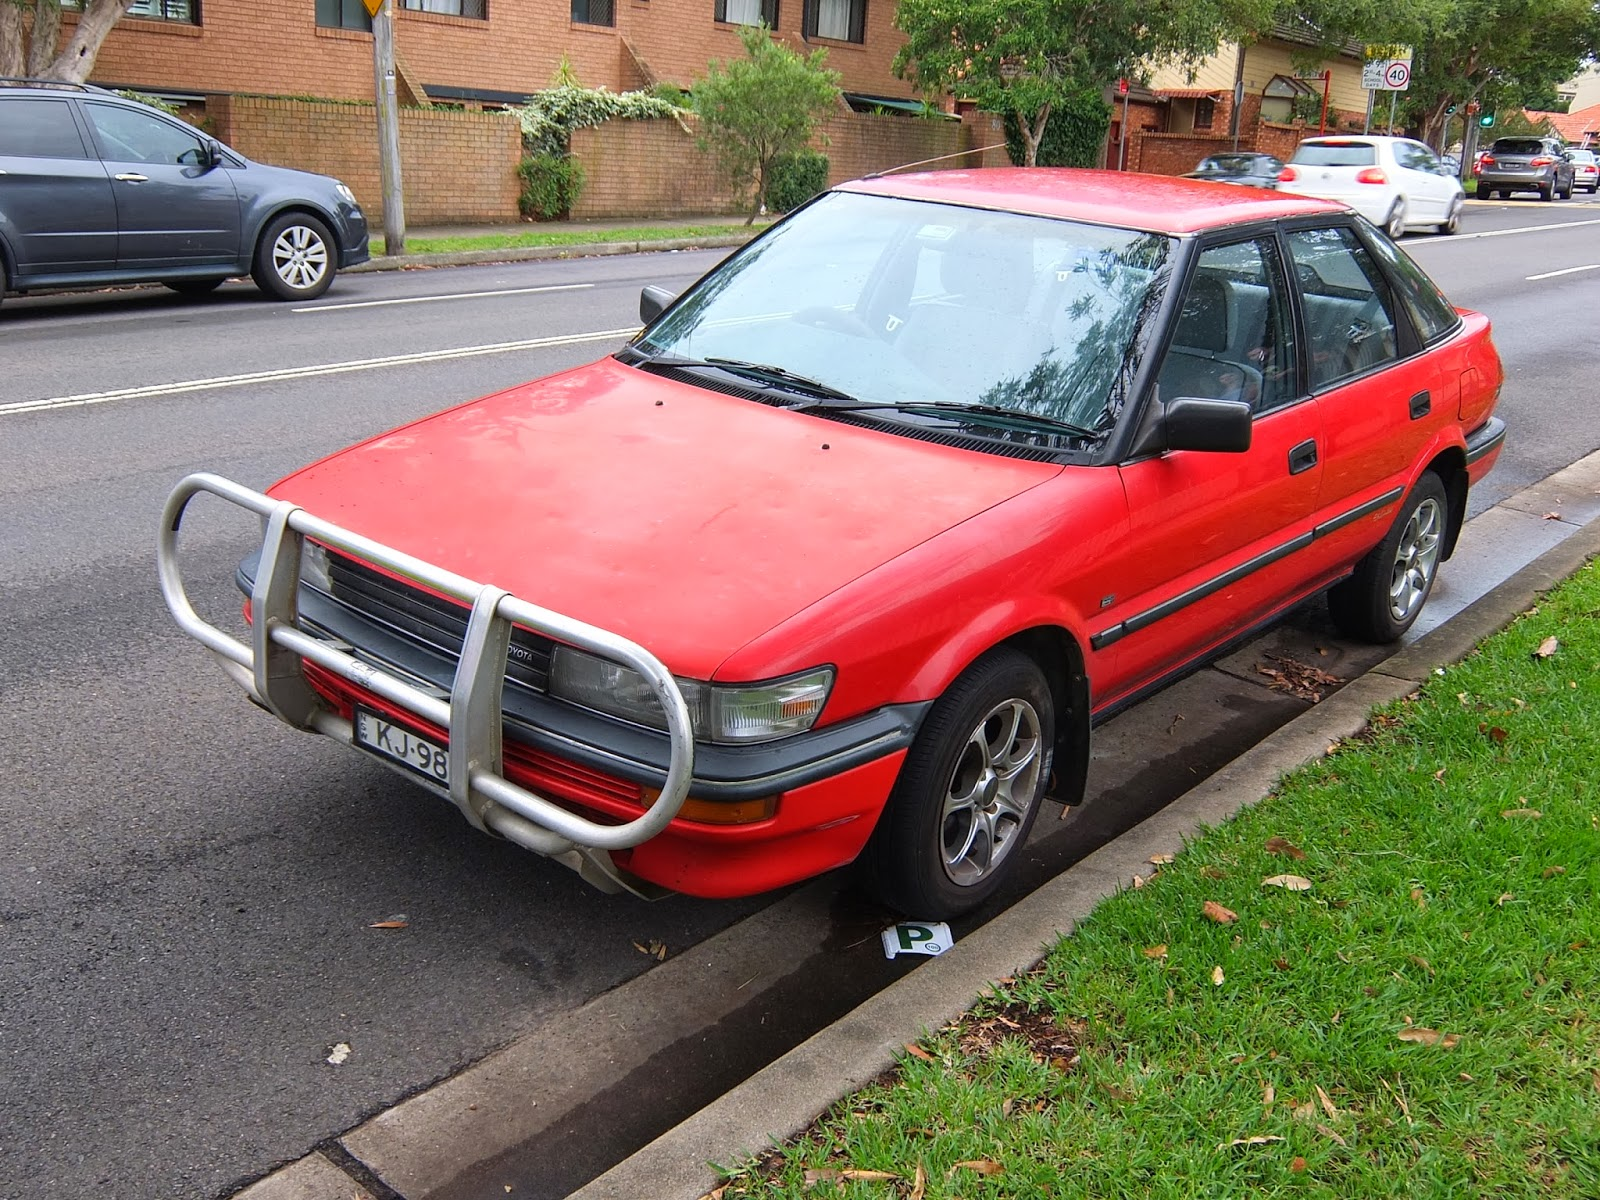 aussie old parked cars 1990 toyota corolla seca cs. Black Bedroom Furniture Sets. Home Design Ideas